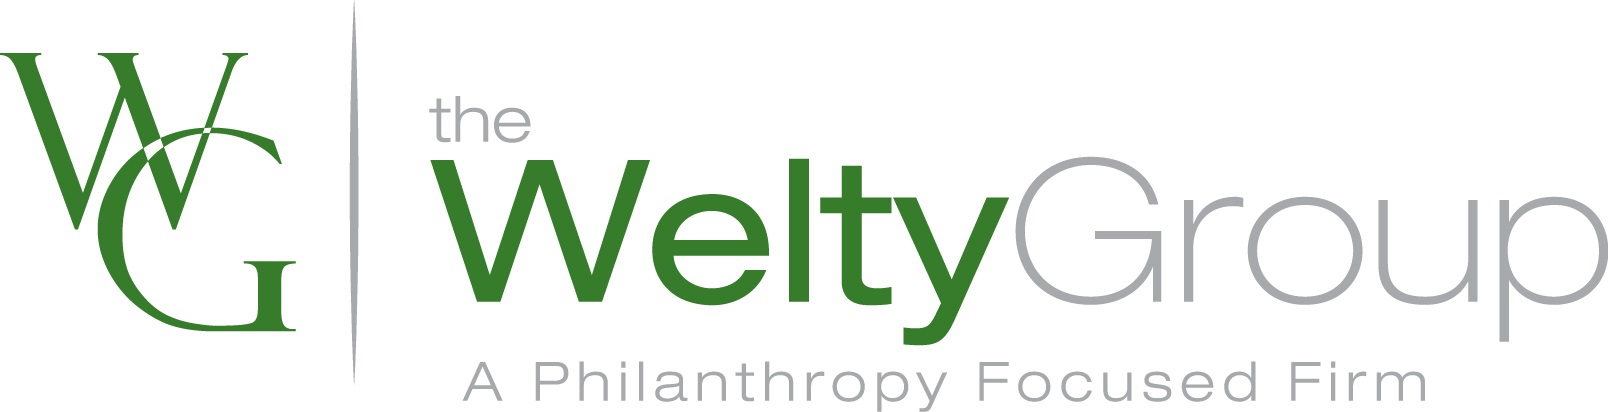 TheWeltyGroup_Logo+Tagline_Color